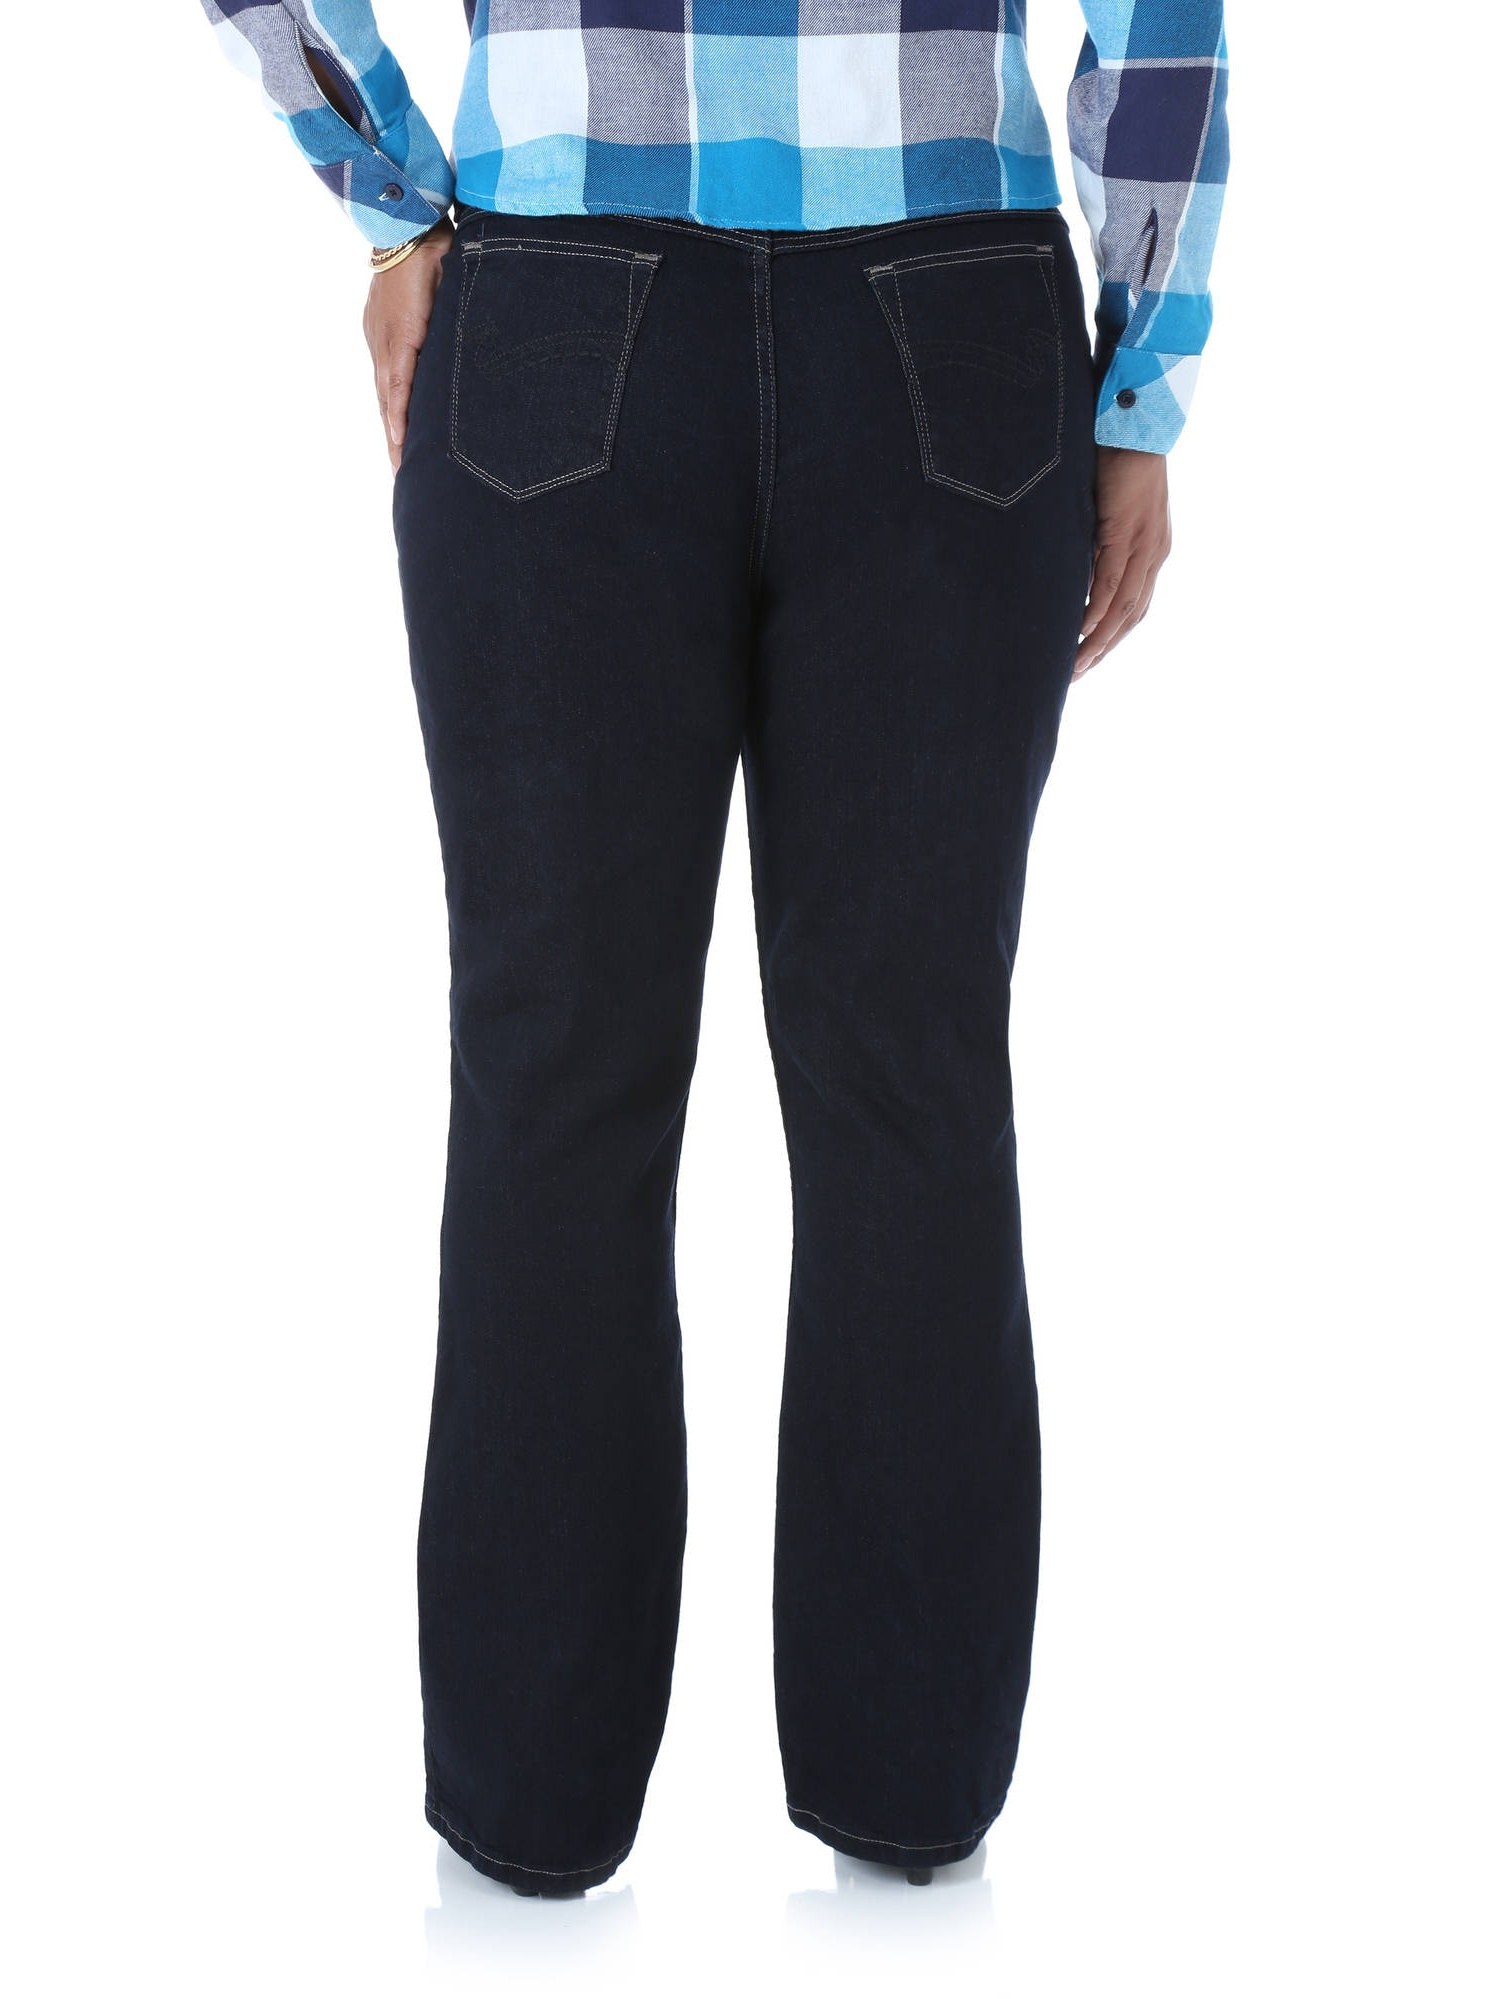 19813a19 Lee Riders - Women's Plus-Size Classic Fit Straight Leg Jeans - Walmart.com